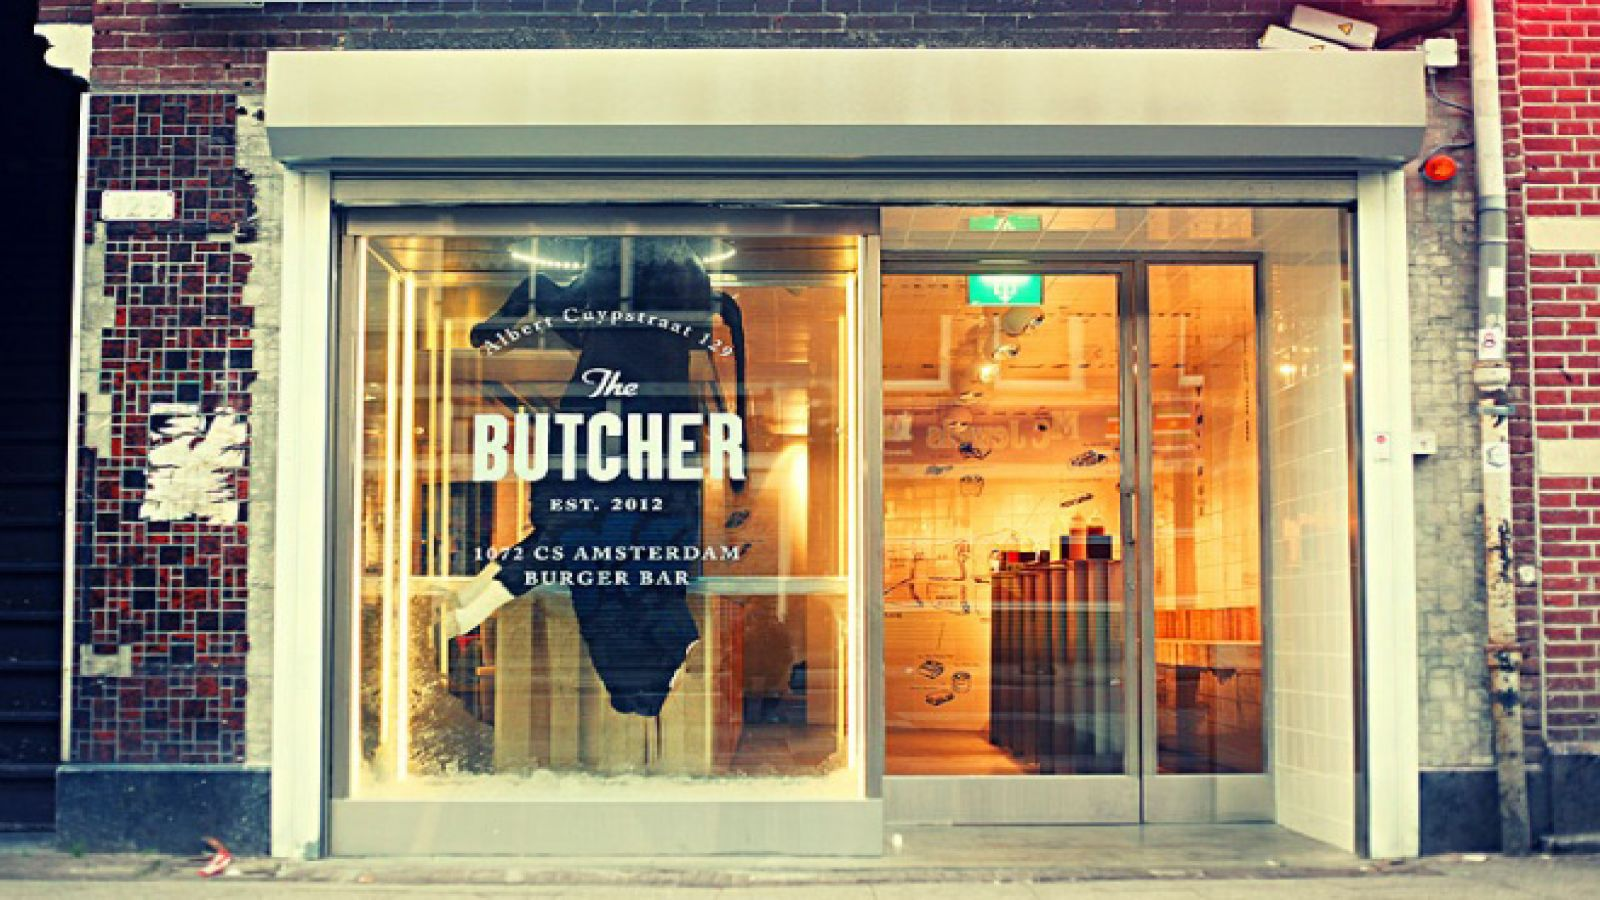 The Butcher 9 Streets